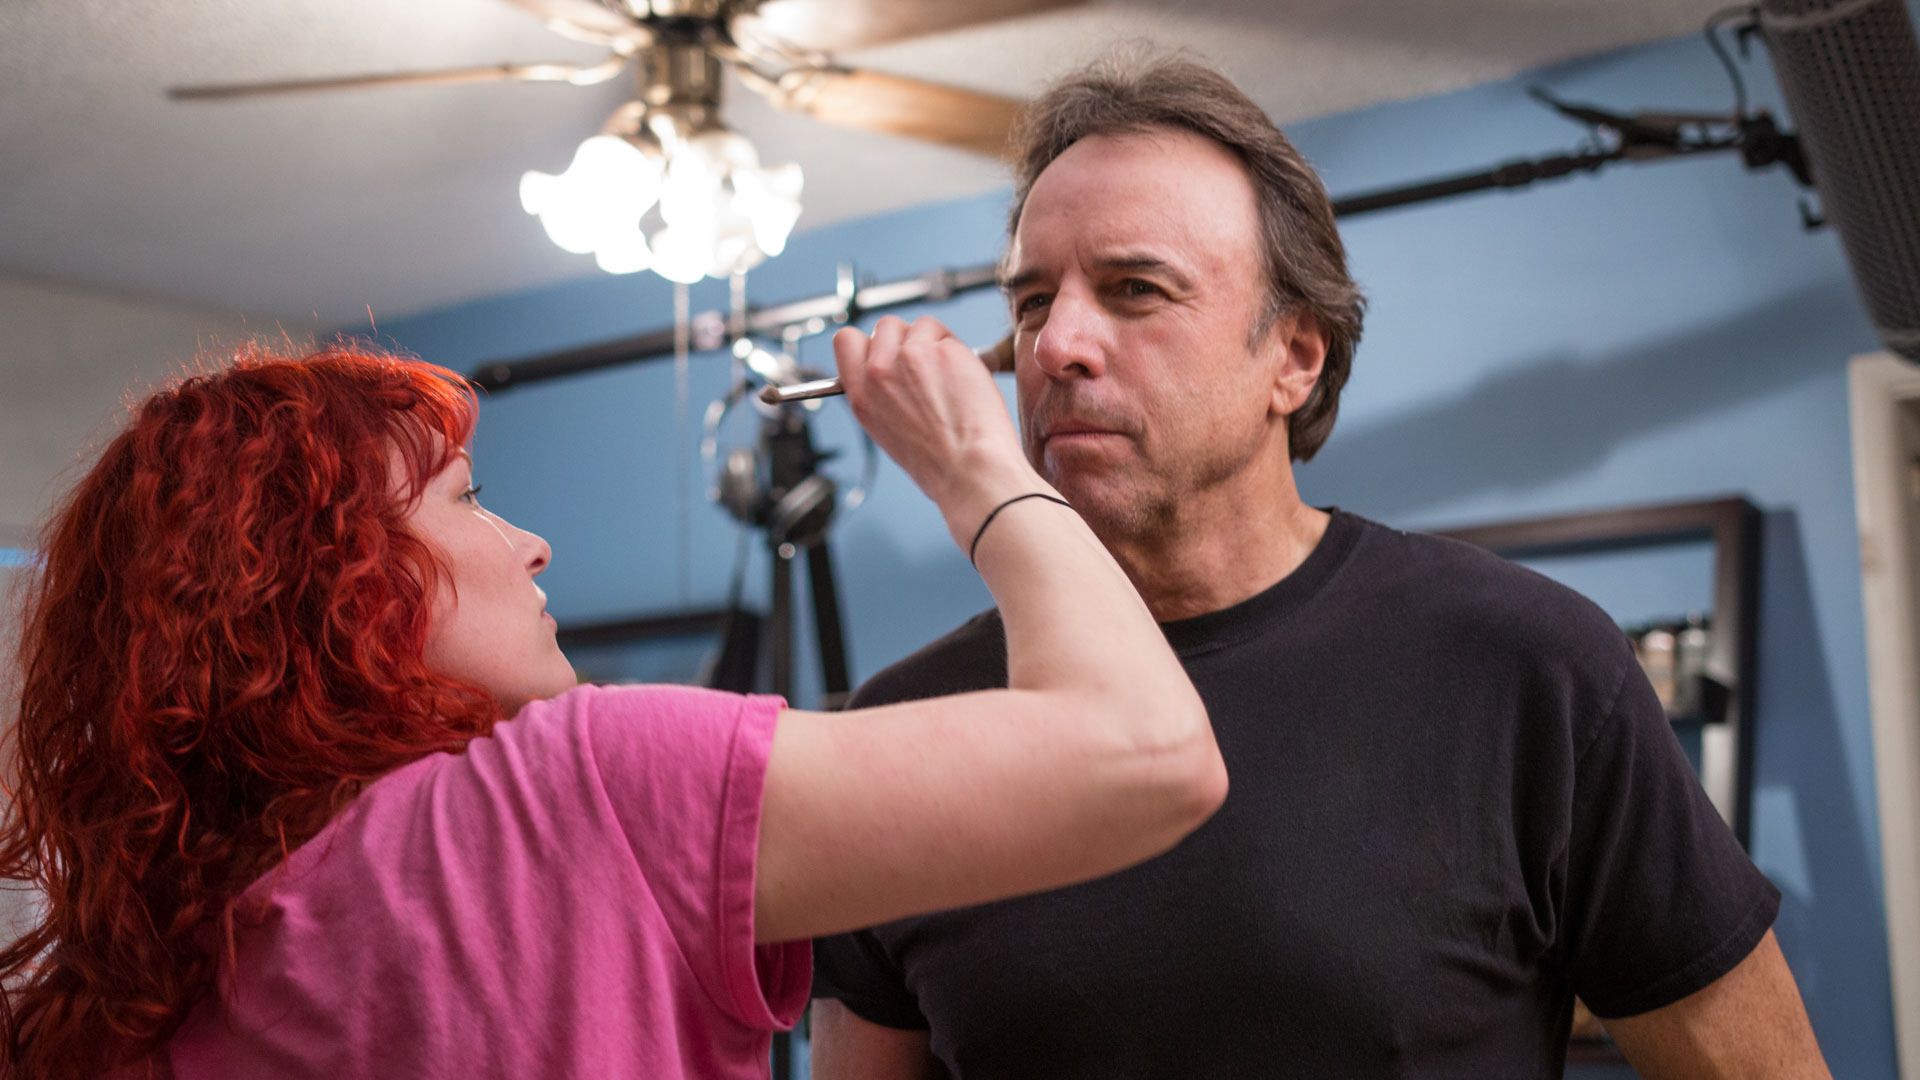 Hey I know that guy! Special cameo by Kevin Nealon. Photo Cred: Evelyn Stommel